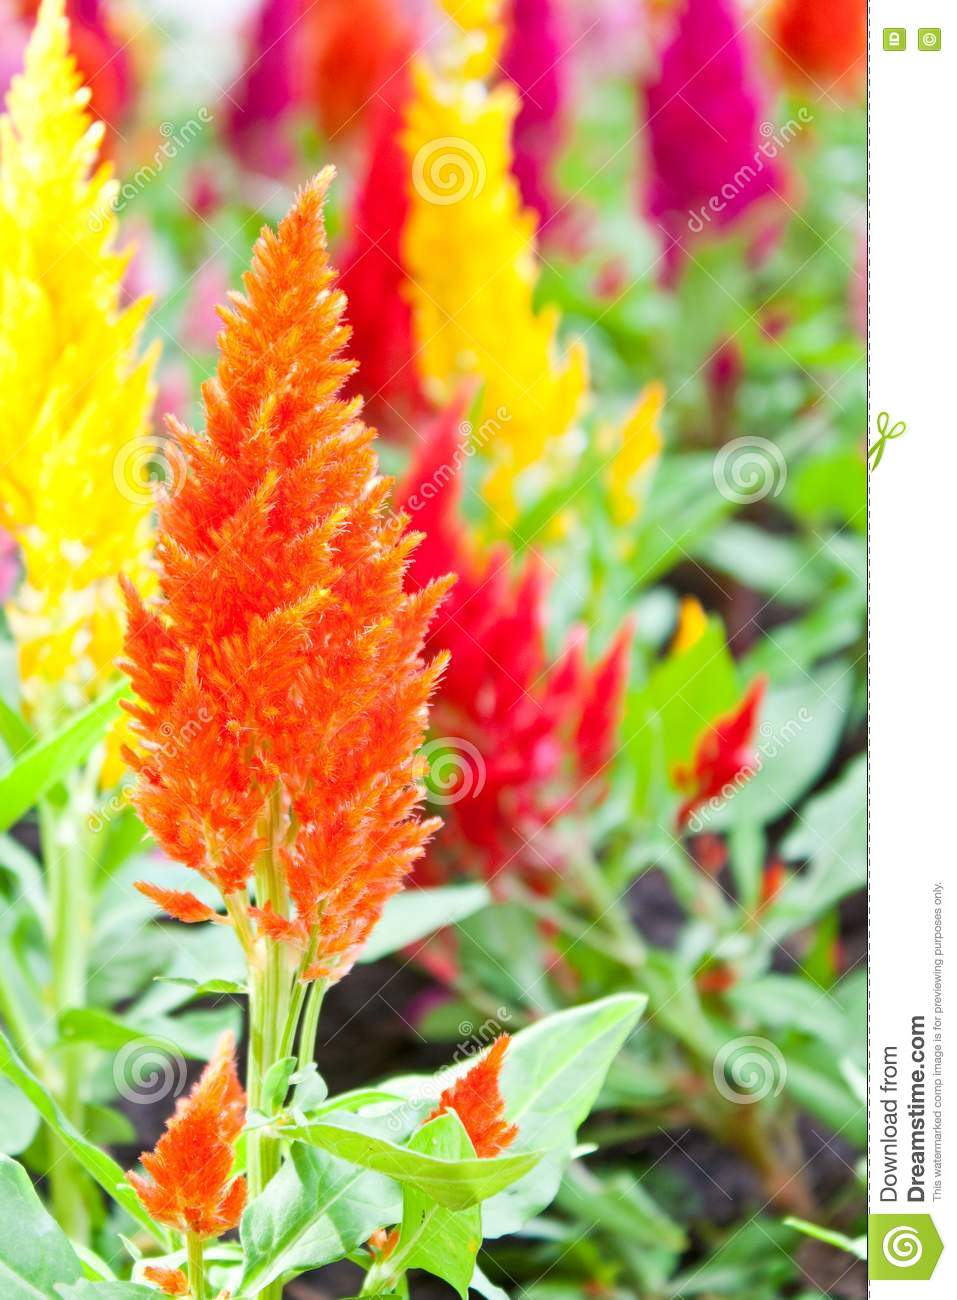 Cockscomb Flower Stock Images - Image: 17774394